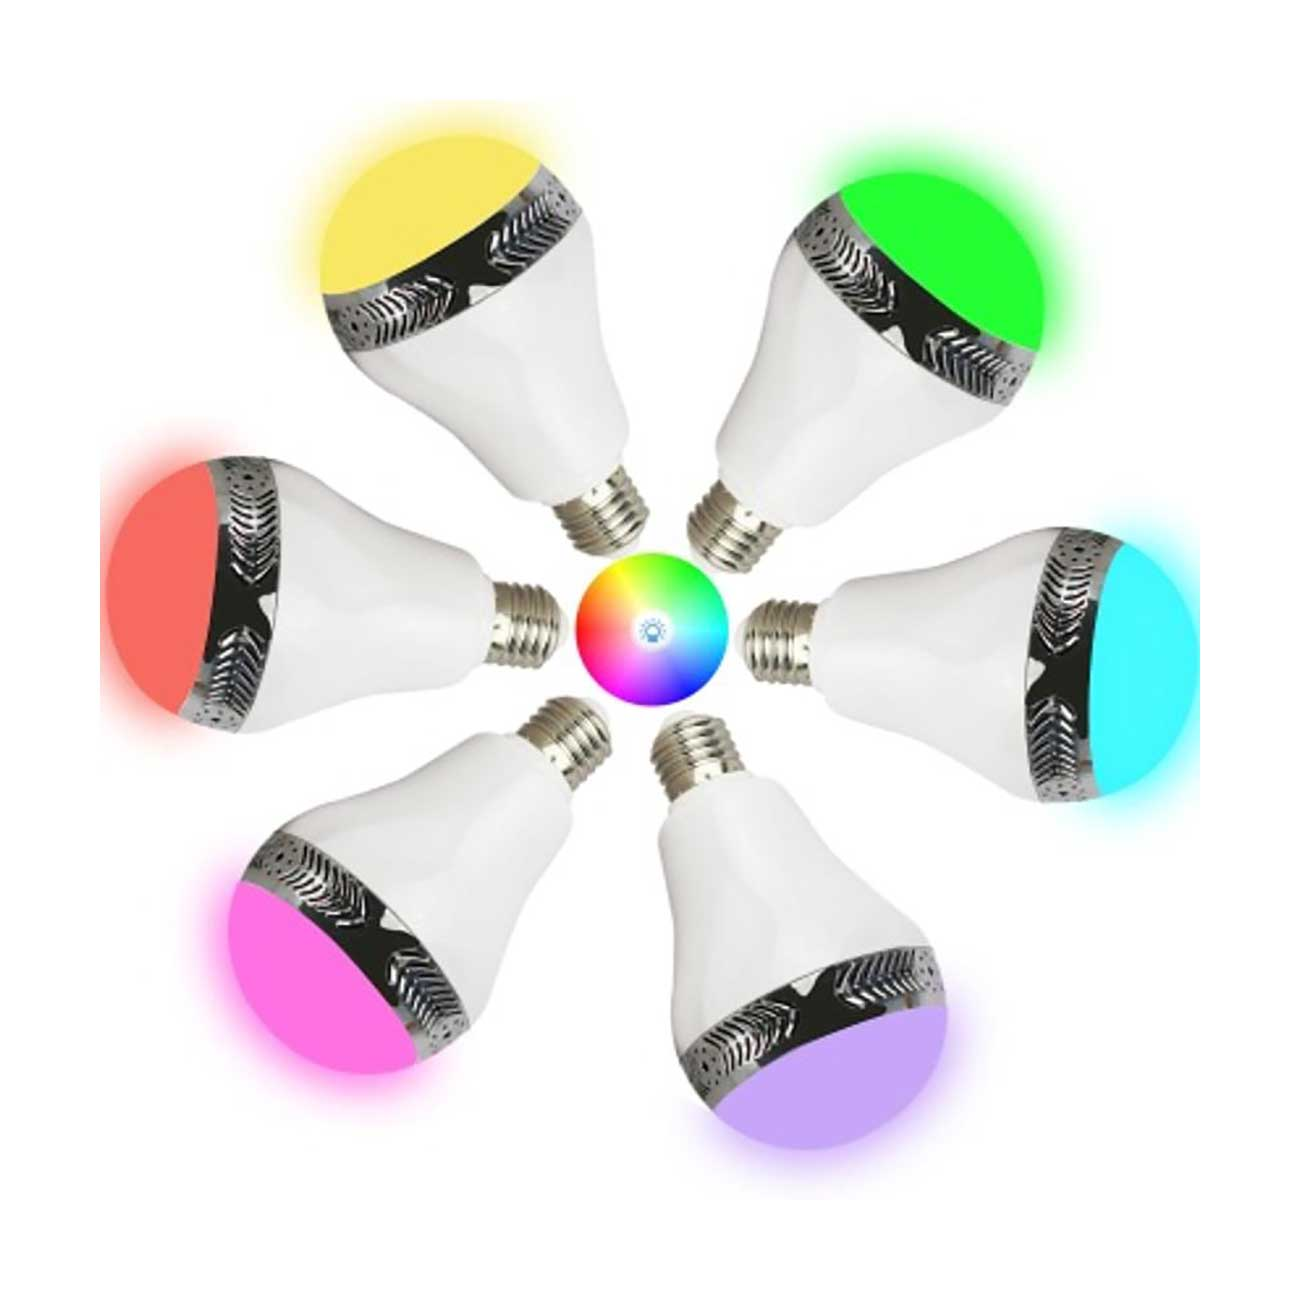 UNIVERSAL LIGHT BULB BLUETOOTH SPECTRUM LED LIGHT SPEAKER IN WHITE